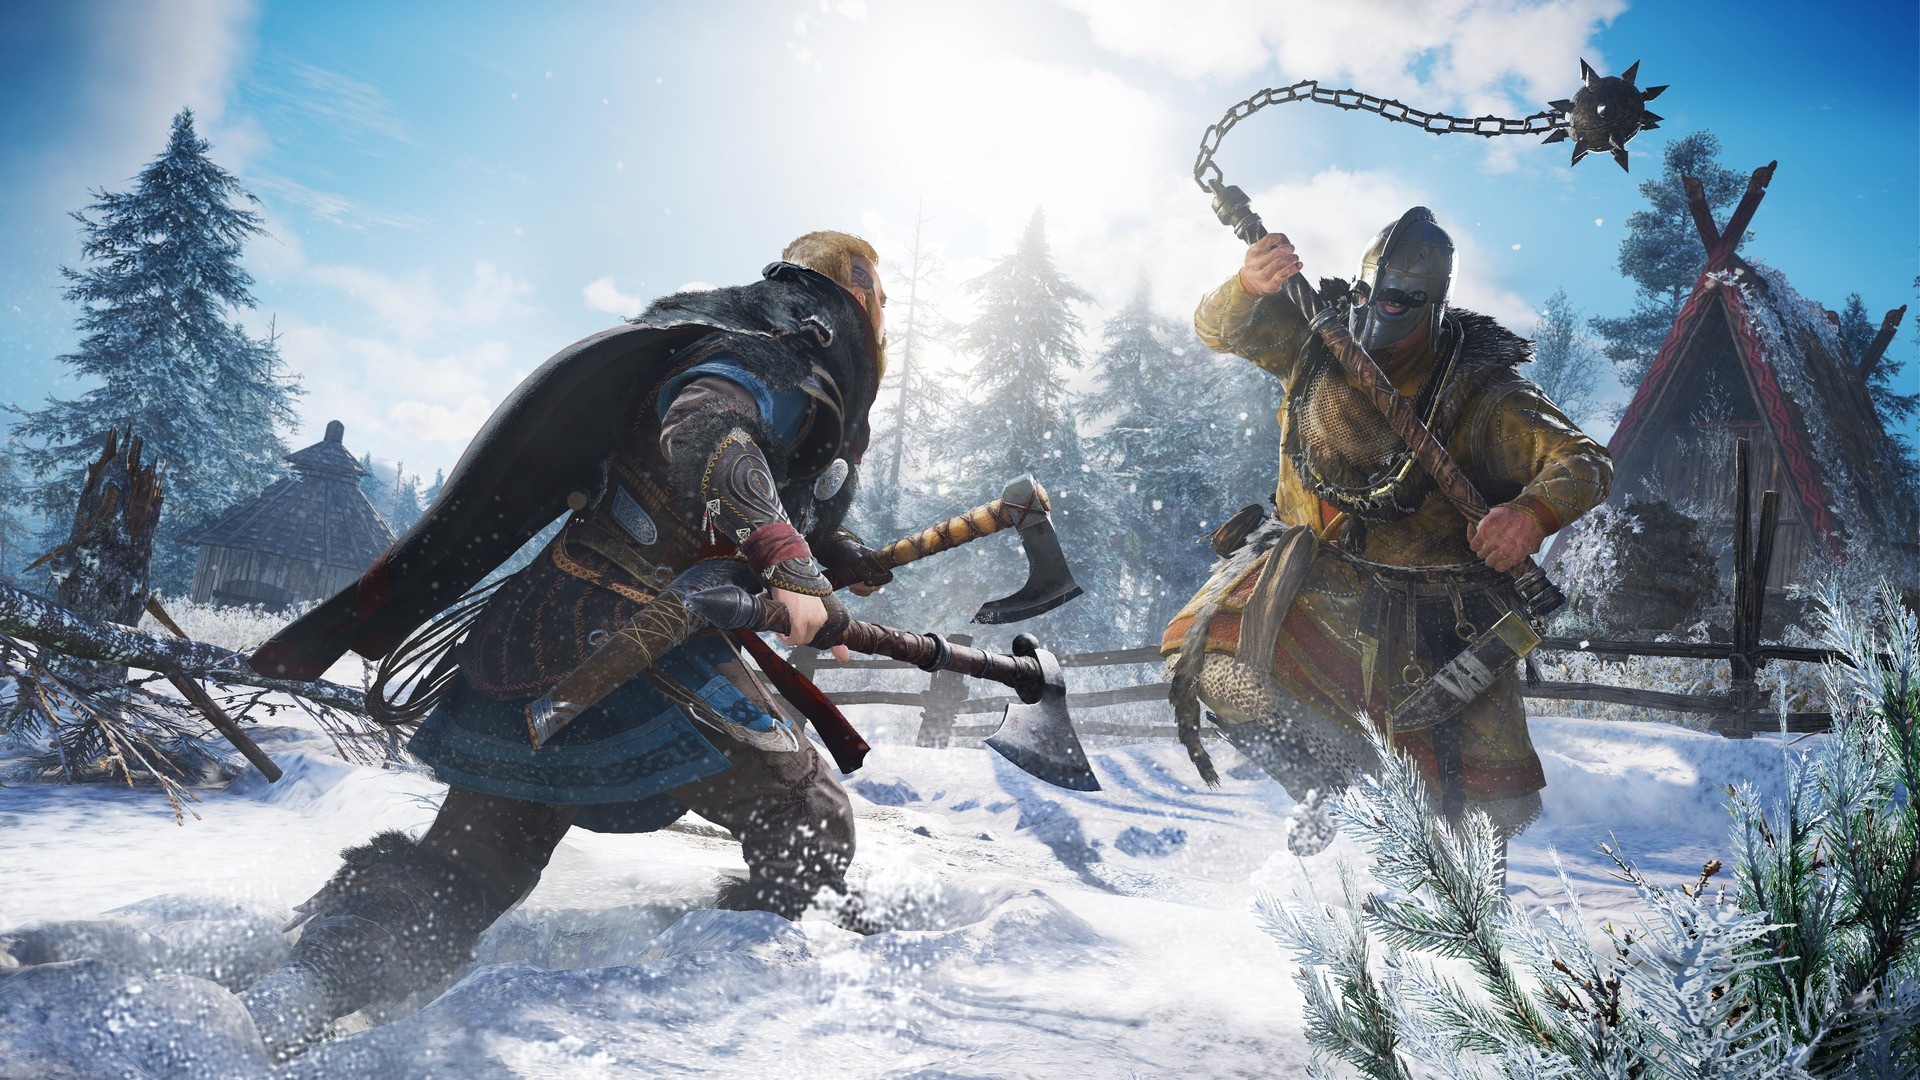 Assassin's Creed Valhalla: film, serie TV e videogiochi basati sul mito nordico